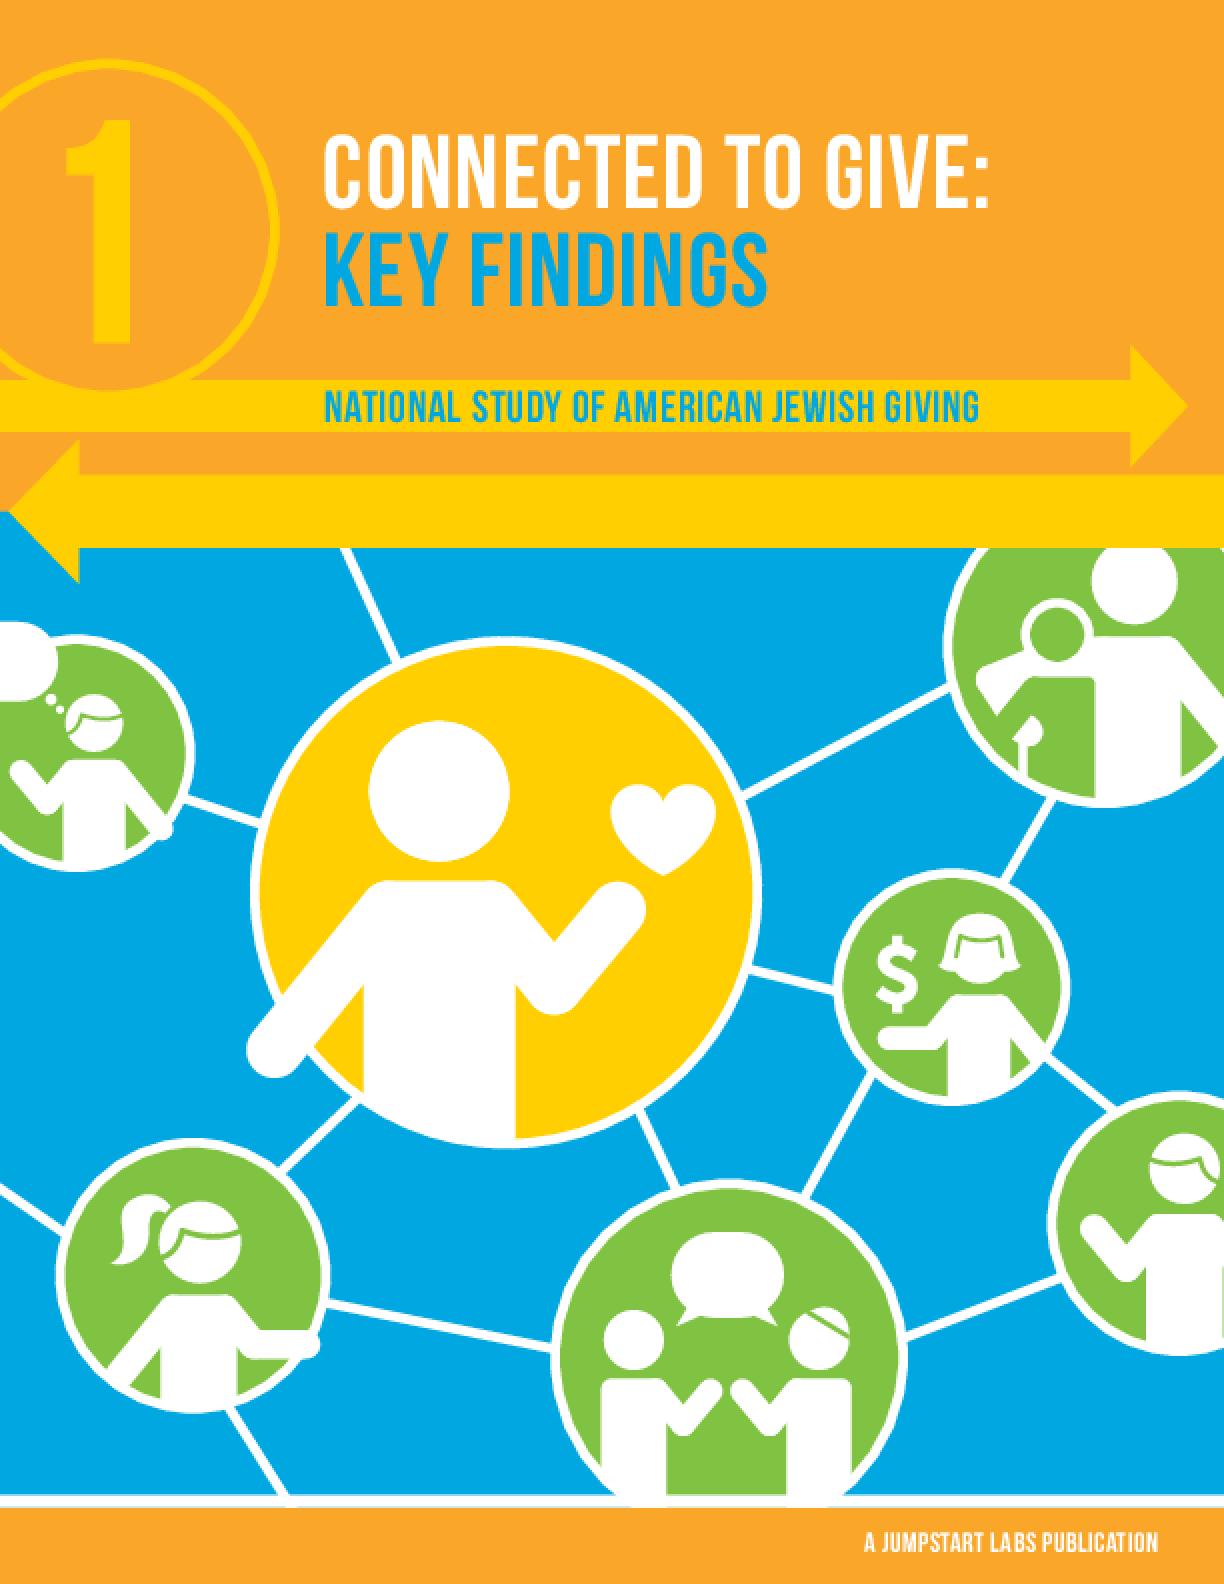 Connected to Give: Key Findings